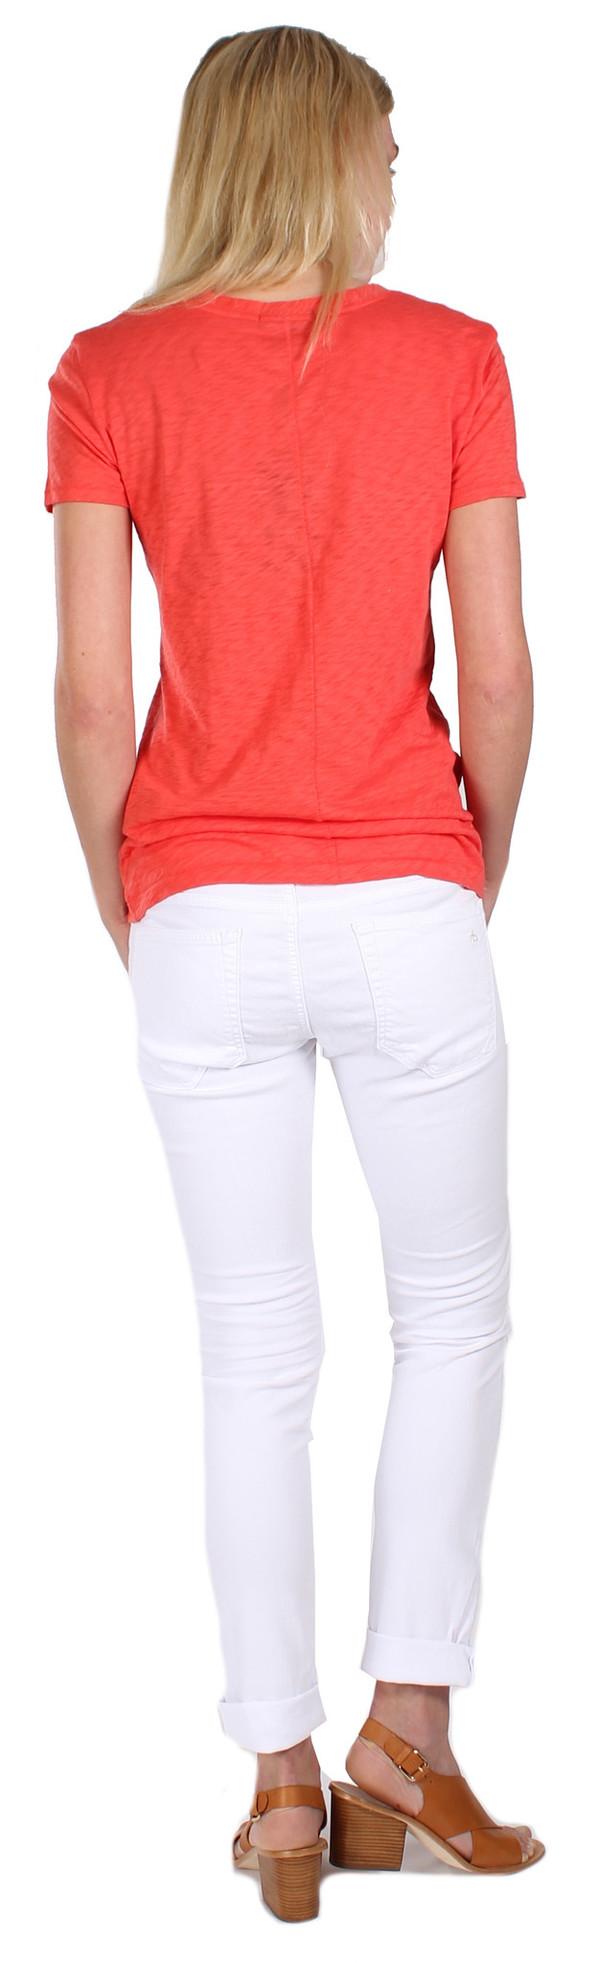 Classic V Neck Tee in Vintage Red